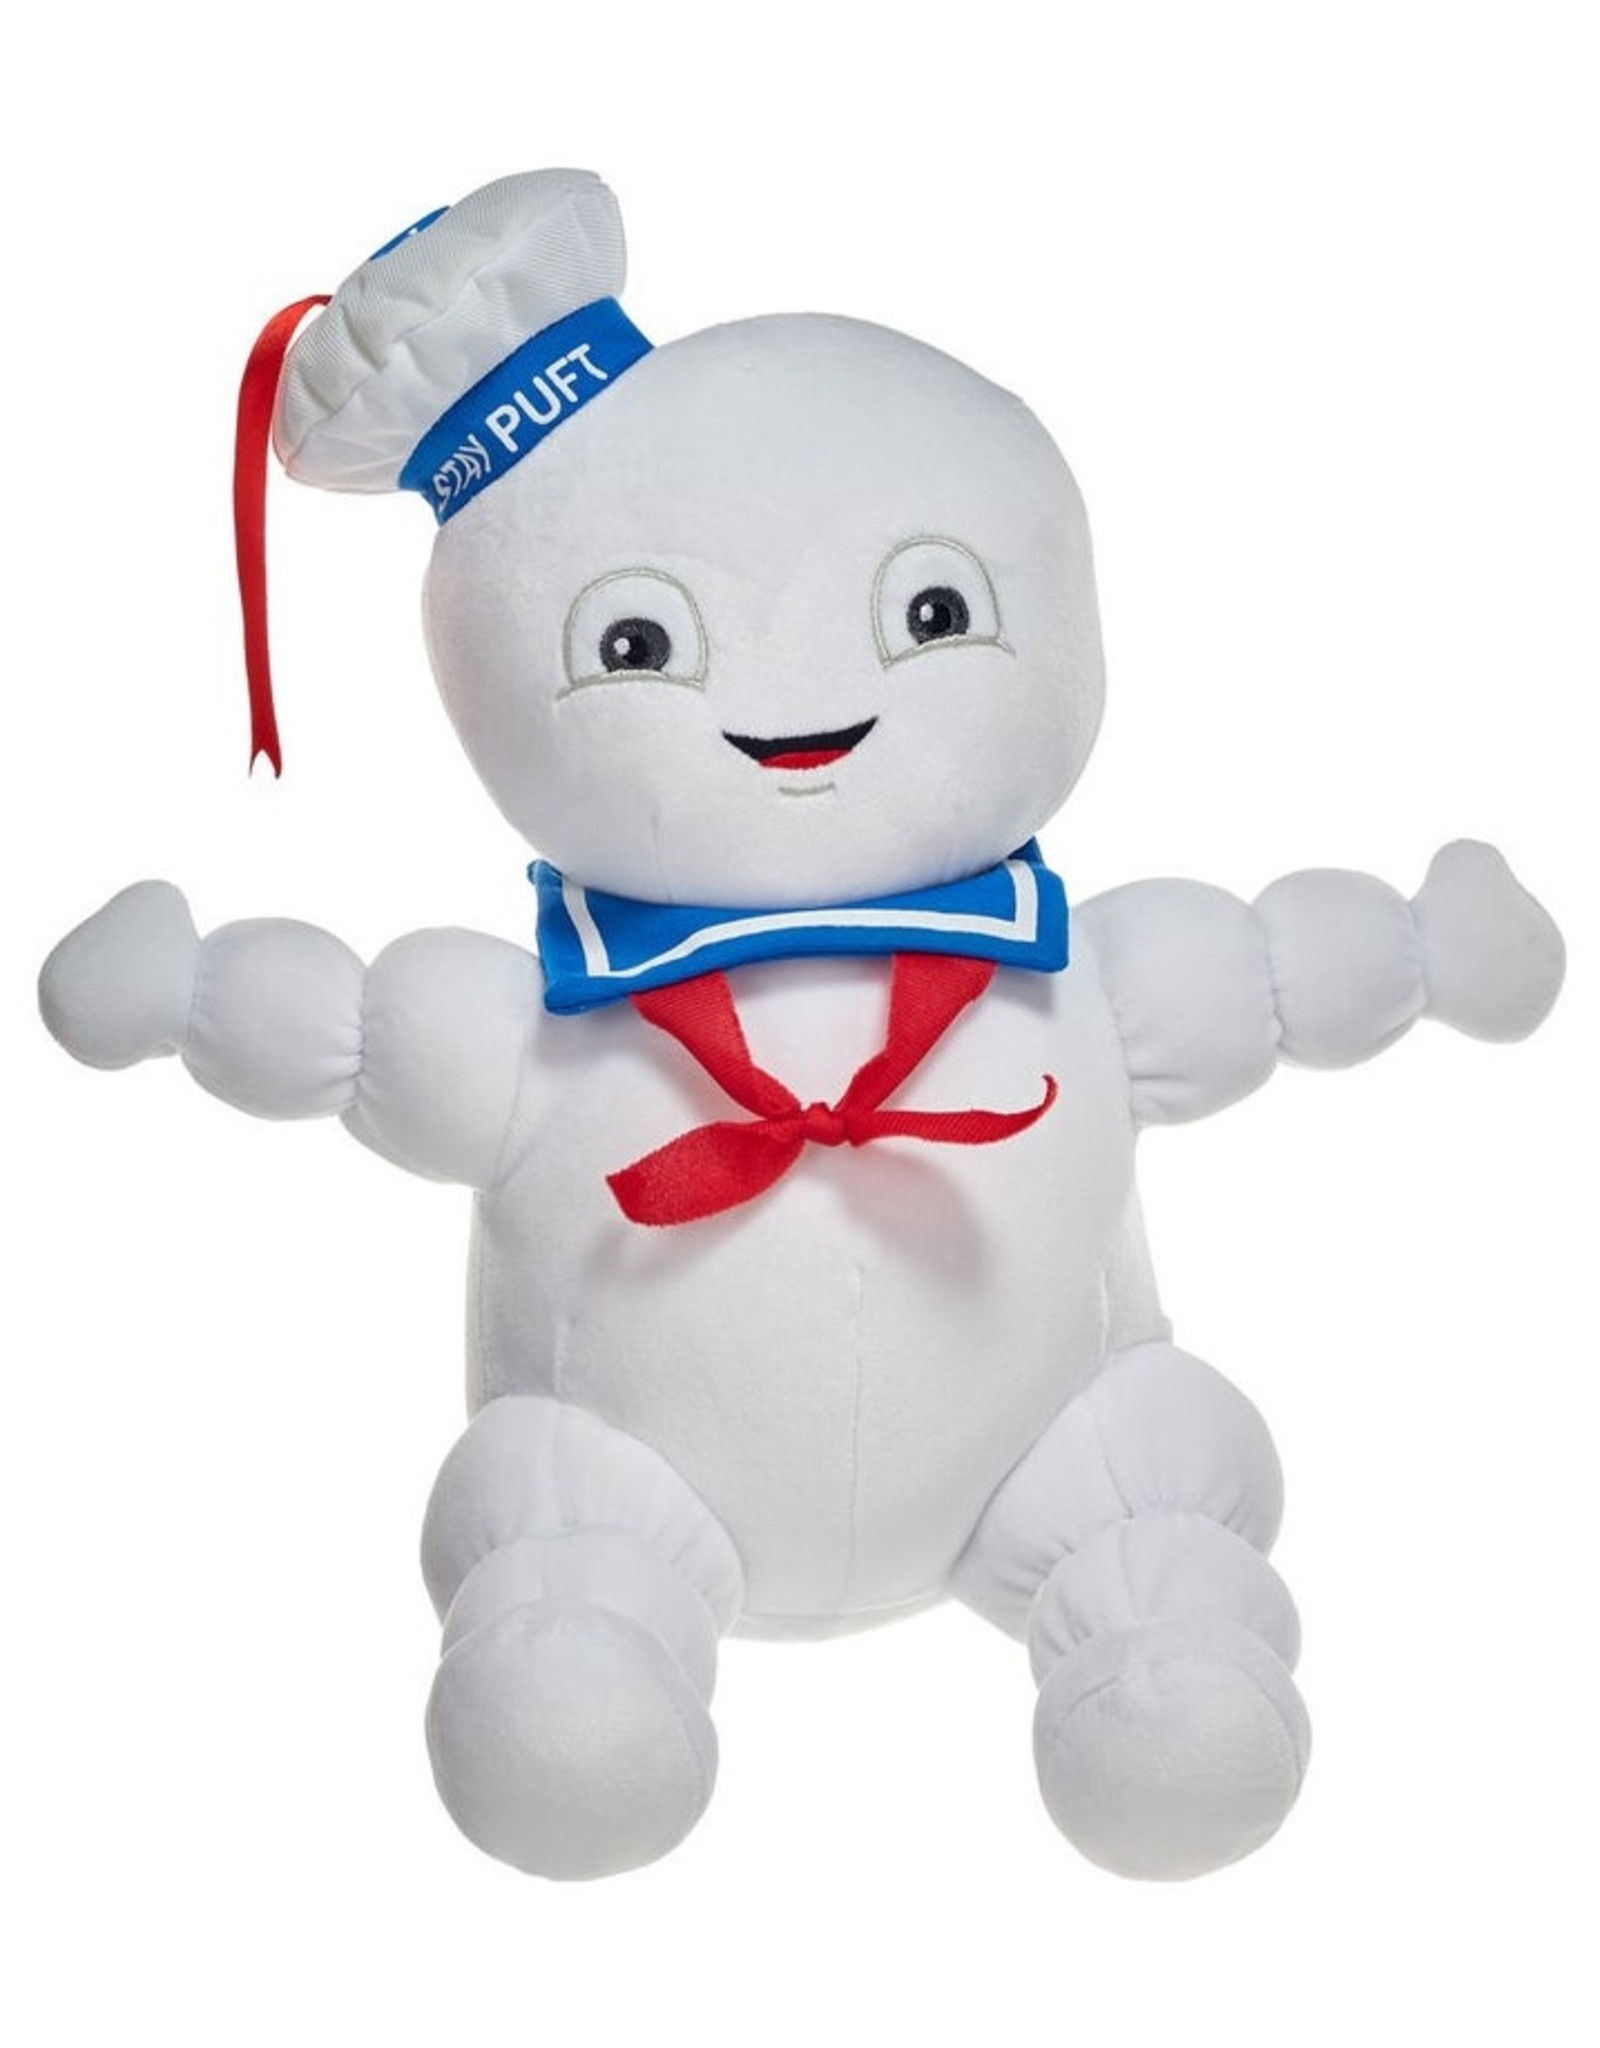 ghostbusters Merchandise plush and figurines - Ghostbusters Stay Puft plush 32cm